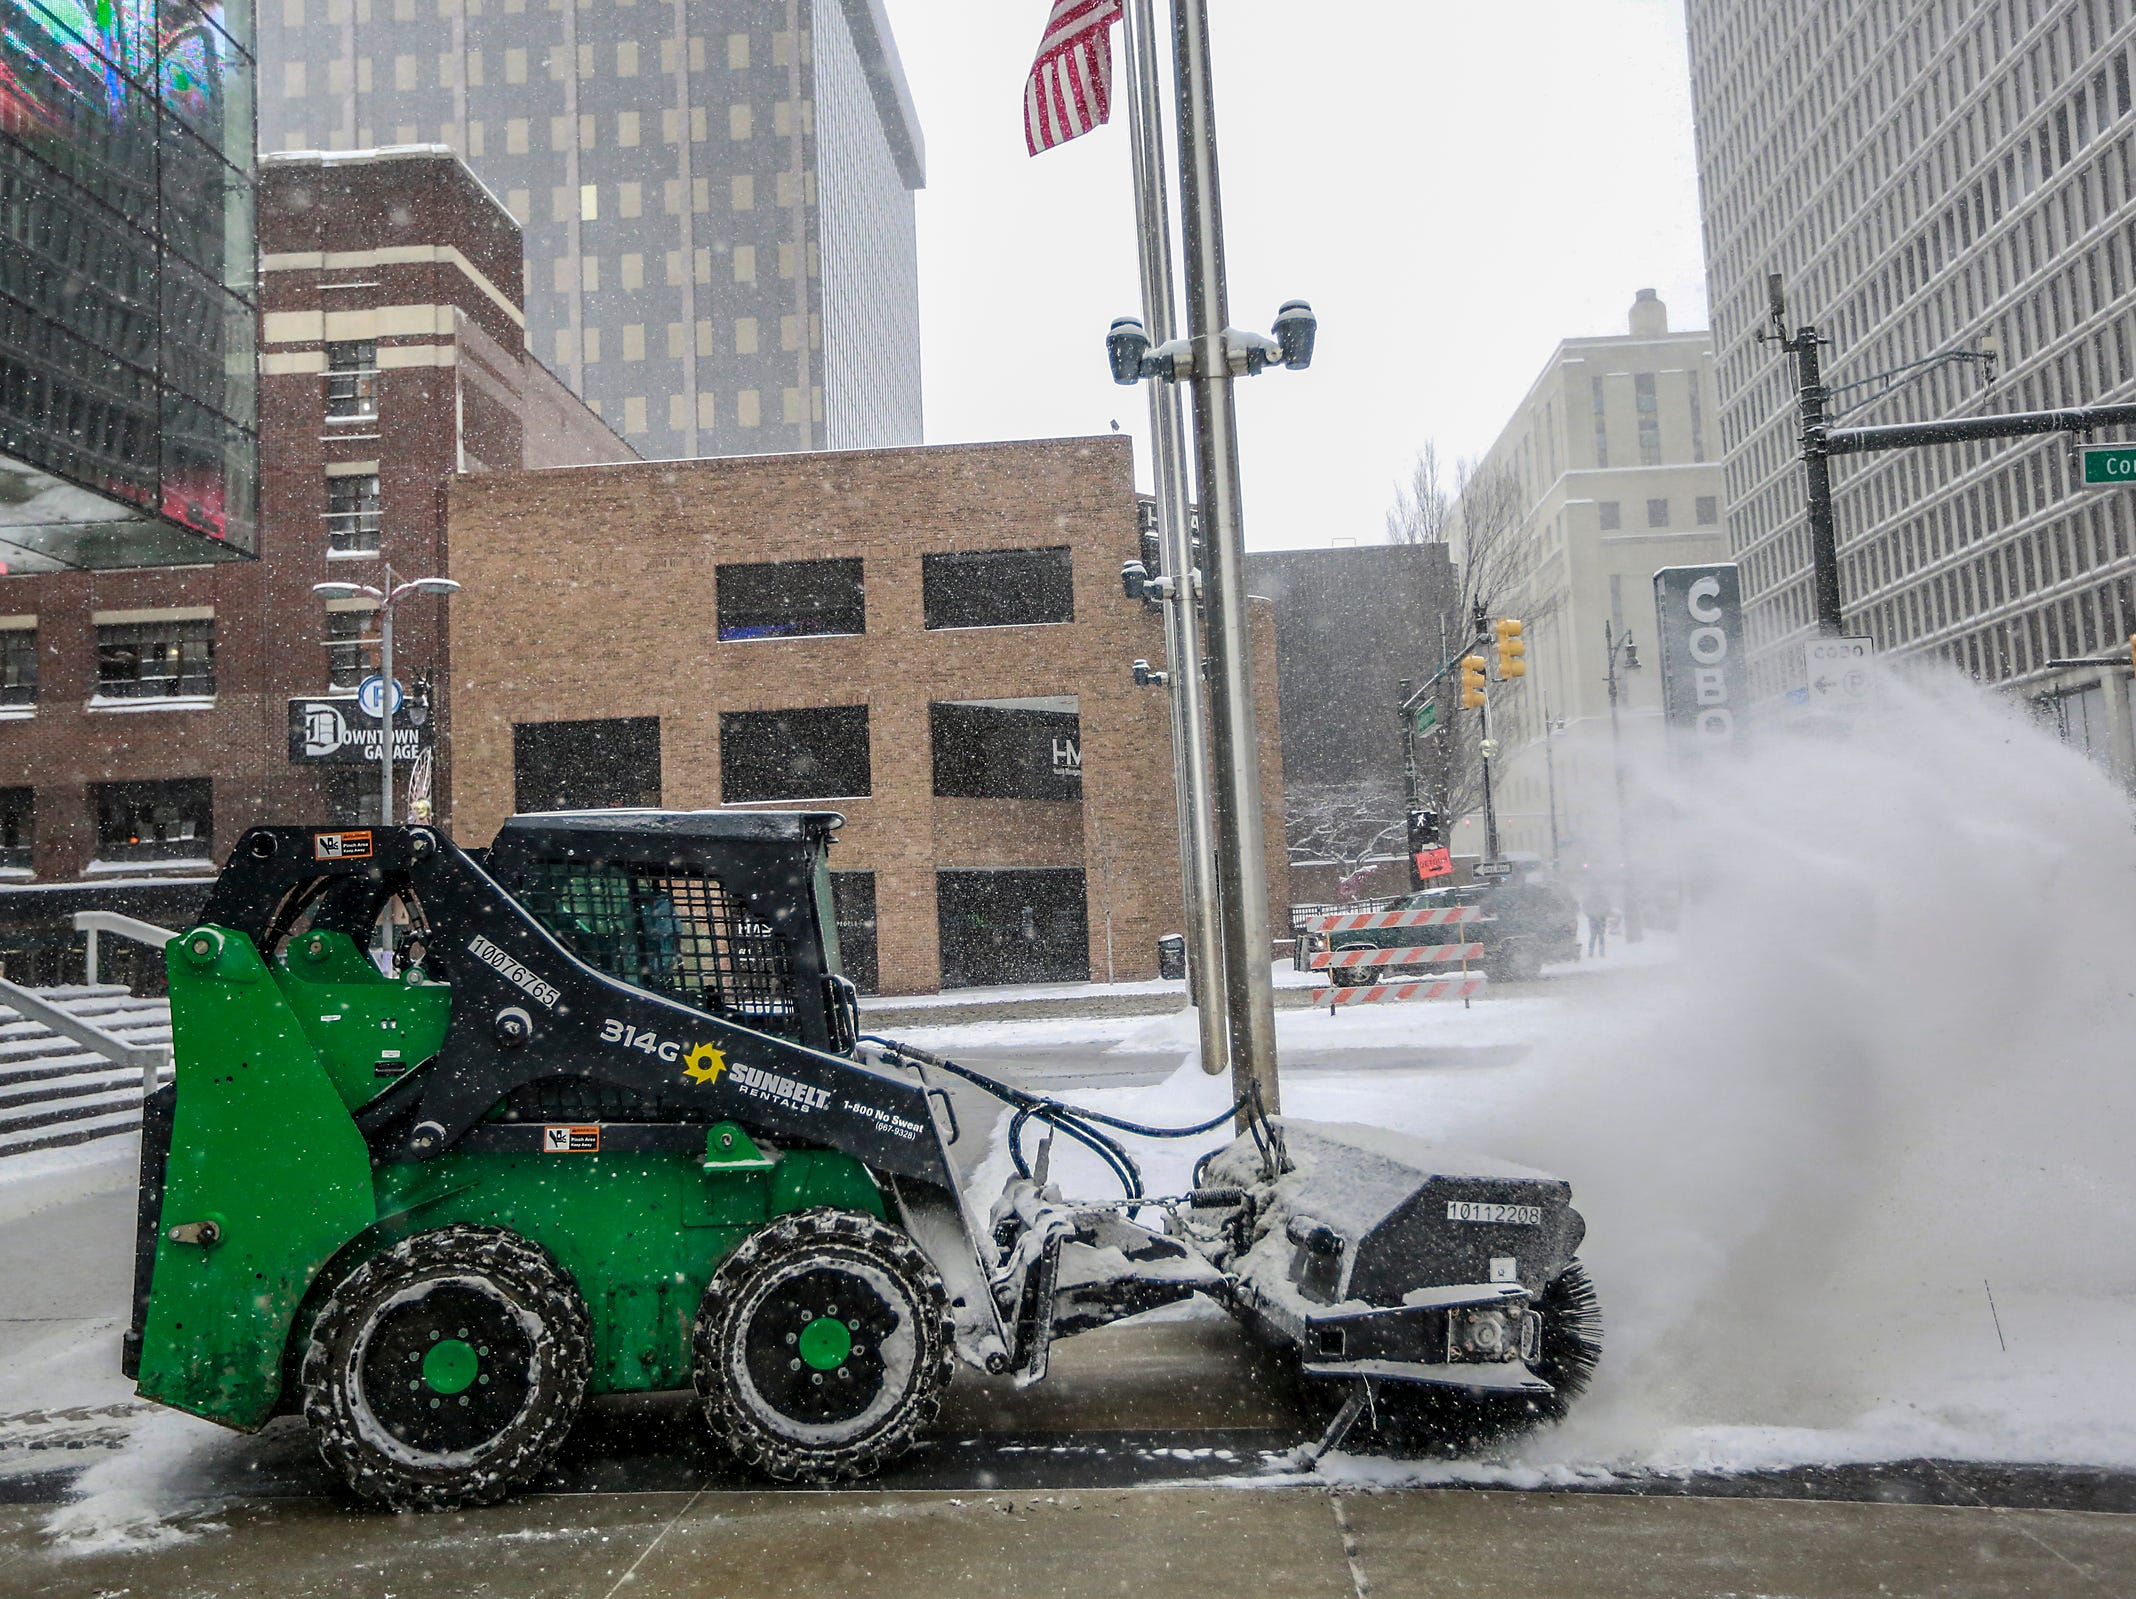 The snow is plowed from the sidewalks during the start of the public days at the North American International Auto Show at Cobo Center in downtown Detroit on Saturday, Jan. 19, 2019.